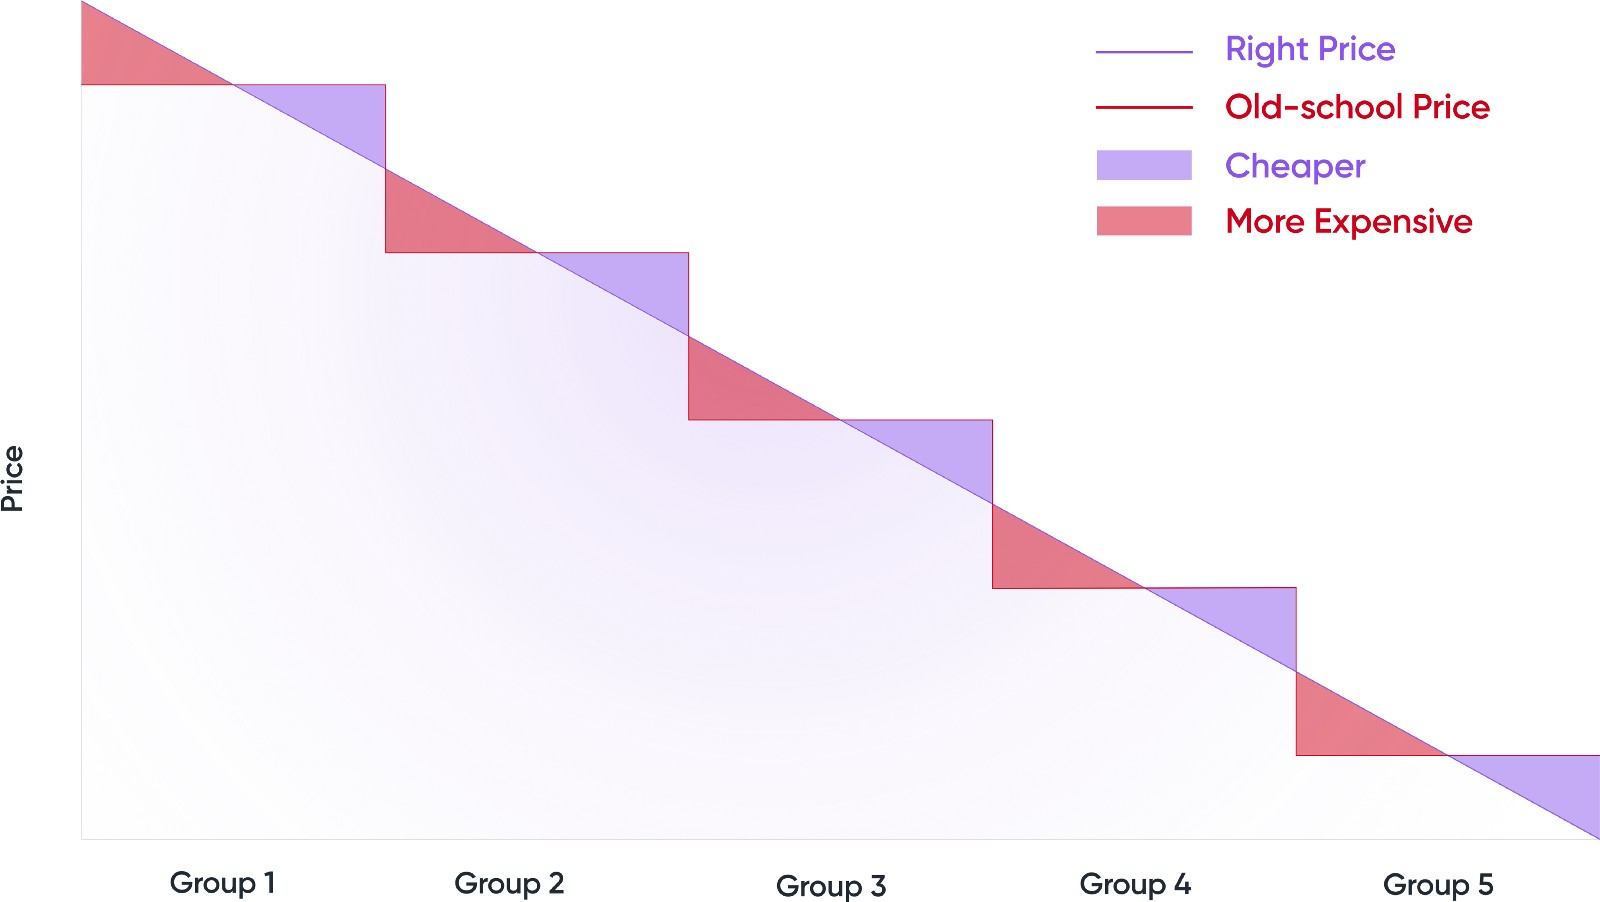 Chart showing pricing based on groups